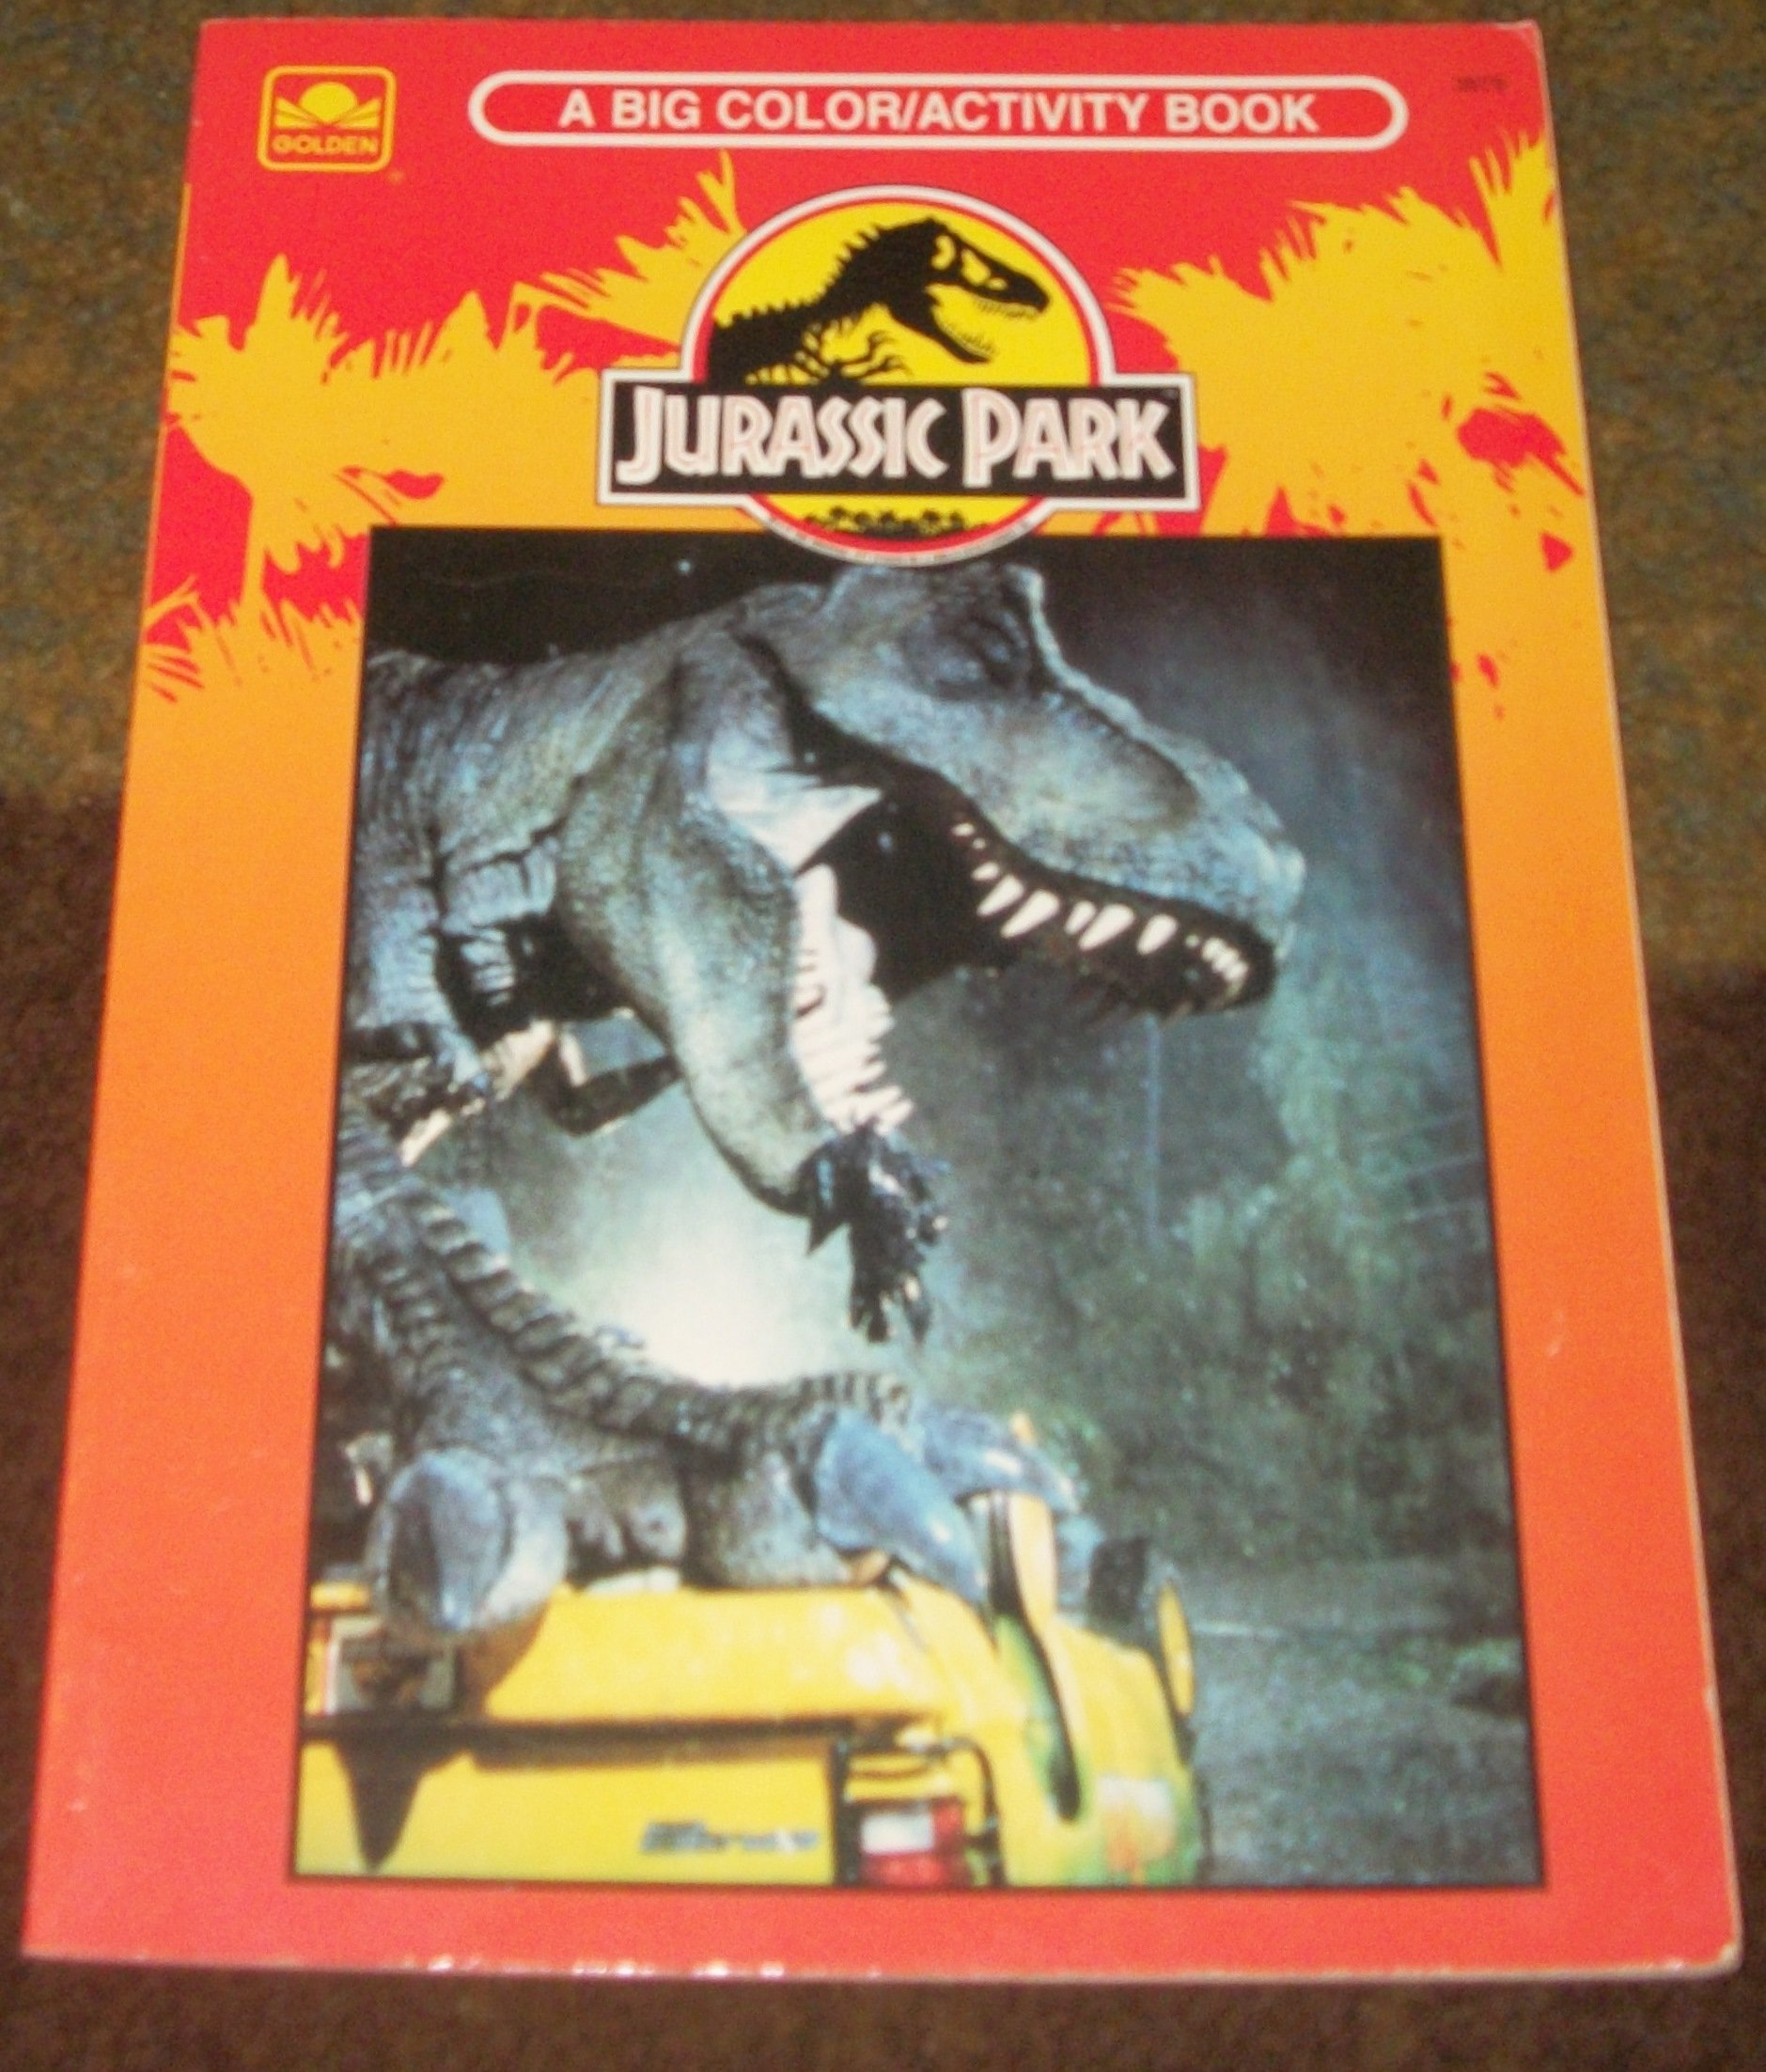 a review of the book jurassic park Jurassic park is a scientific book and there is a lot of explanation but i found the narrator got into a repetitive tone that would just bore me 1 of 1 people found this review helpful.